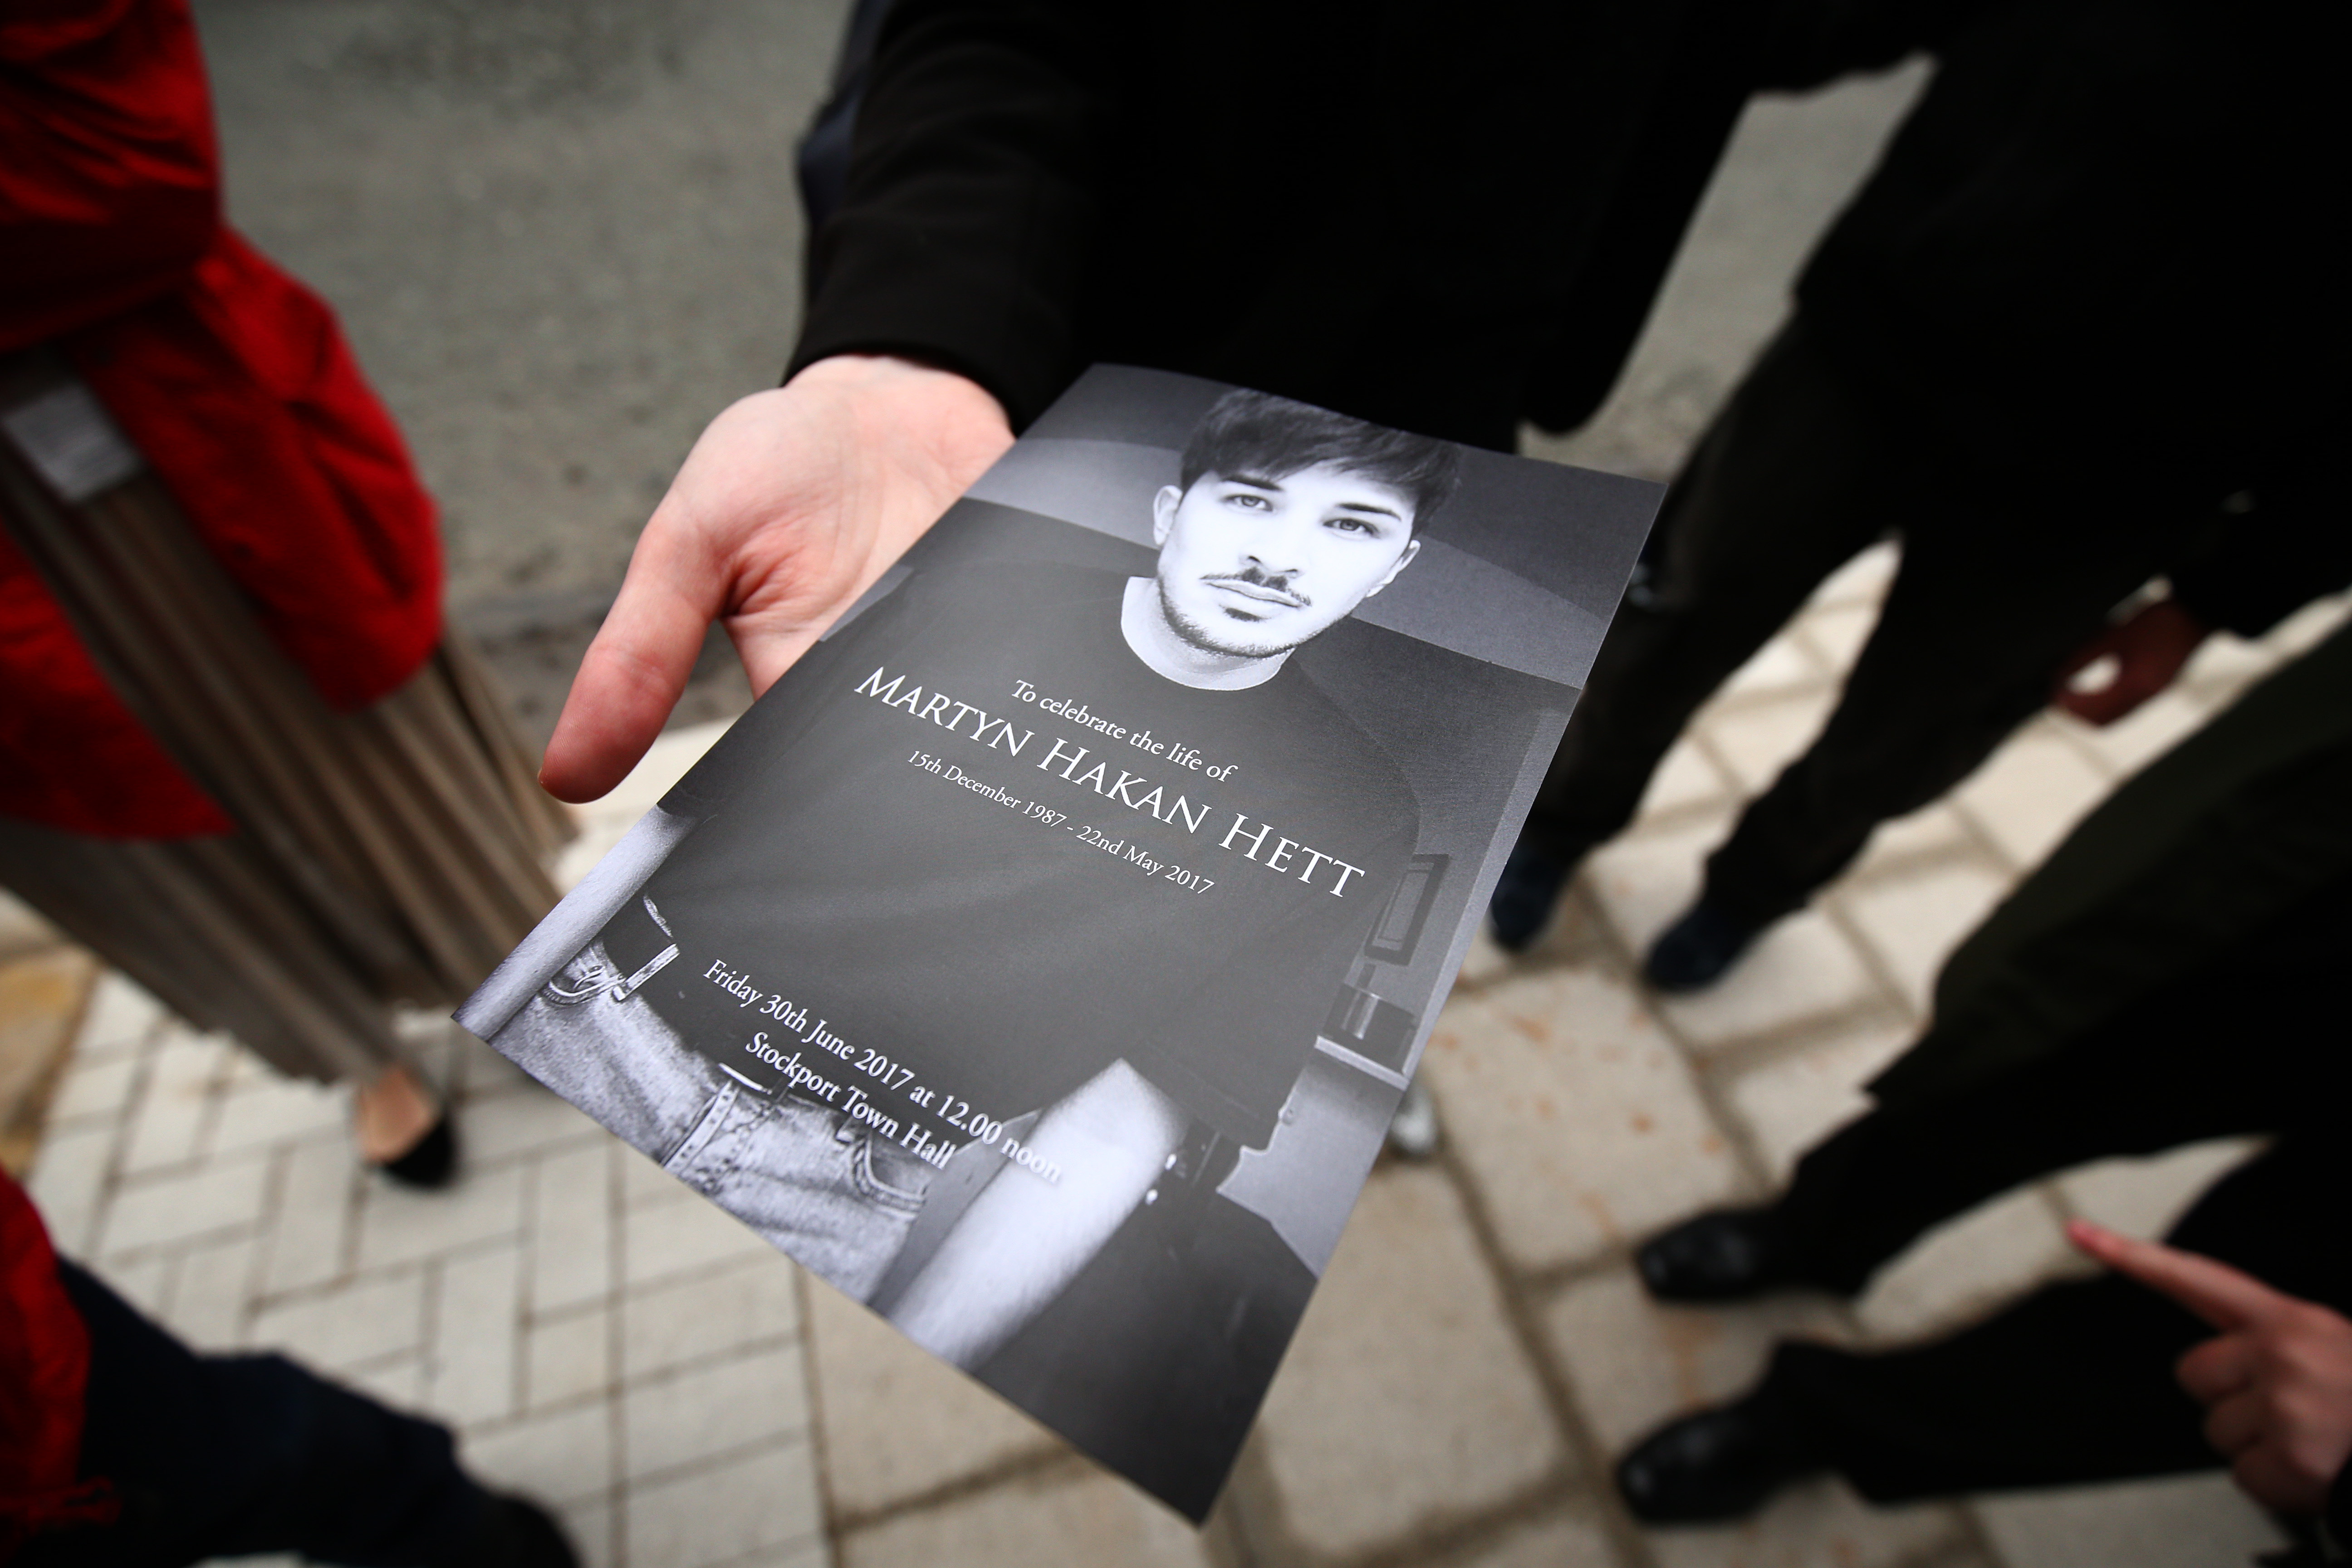 The family of Martyn Hett, one of the victims of a deadly terror attack in Manchester, England, have campaigned for tighter legislation around venue security, dubbed Martyn's law. (Dave Thompson/Getty Images)